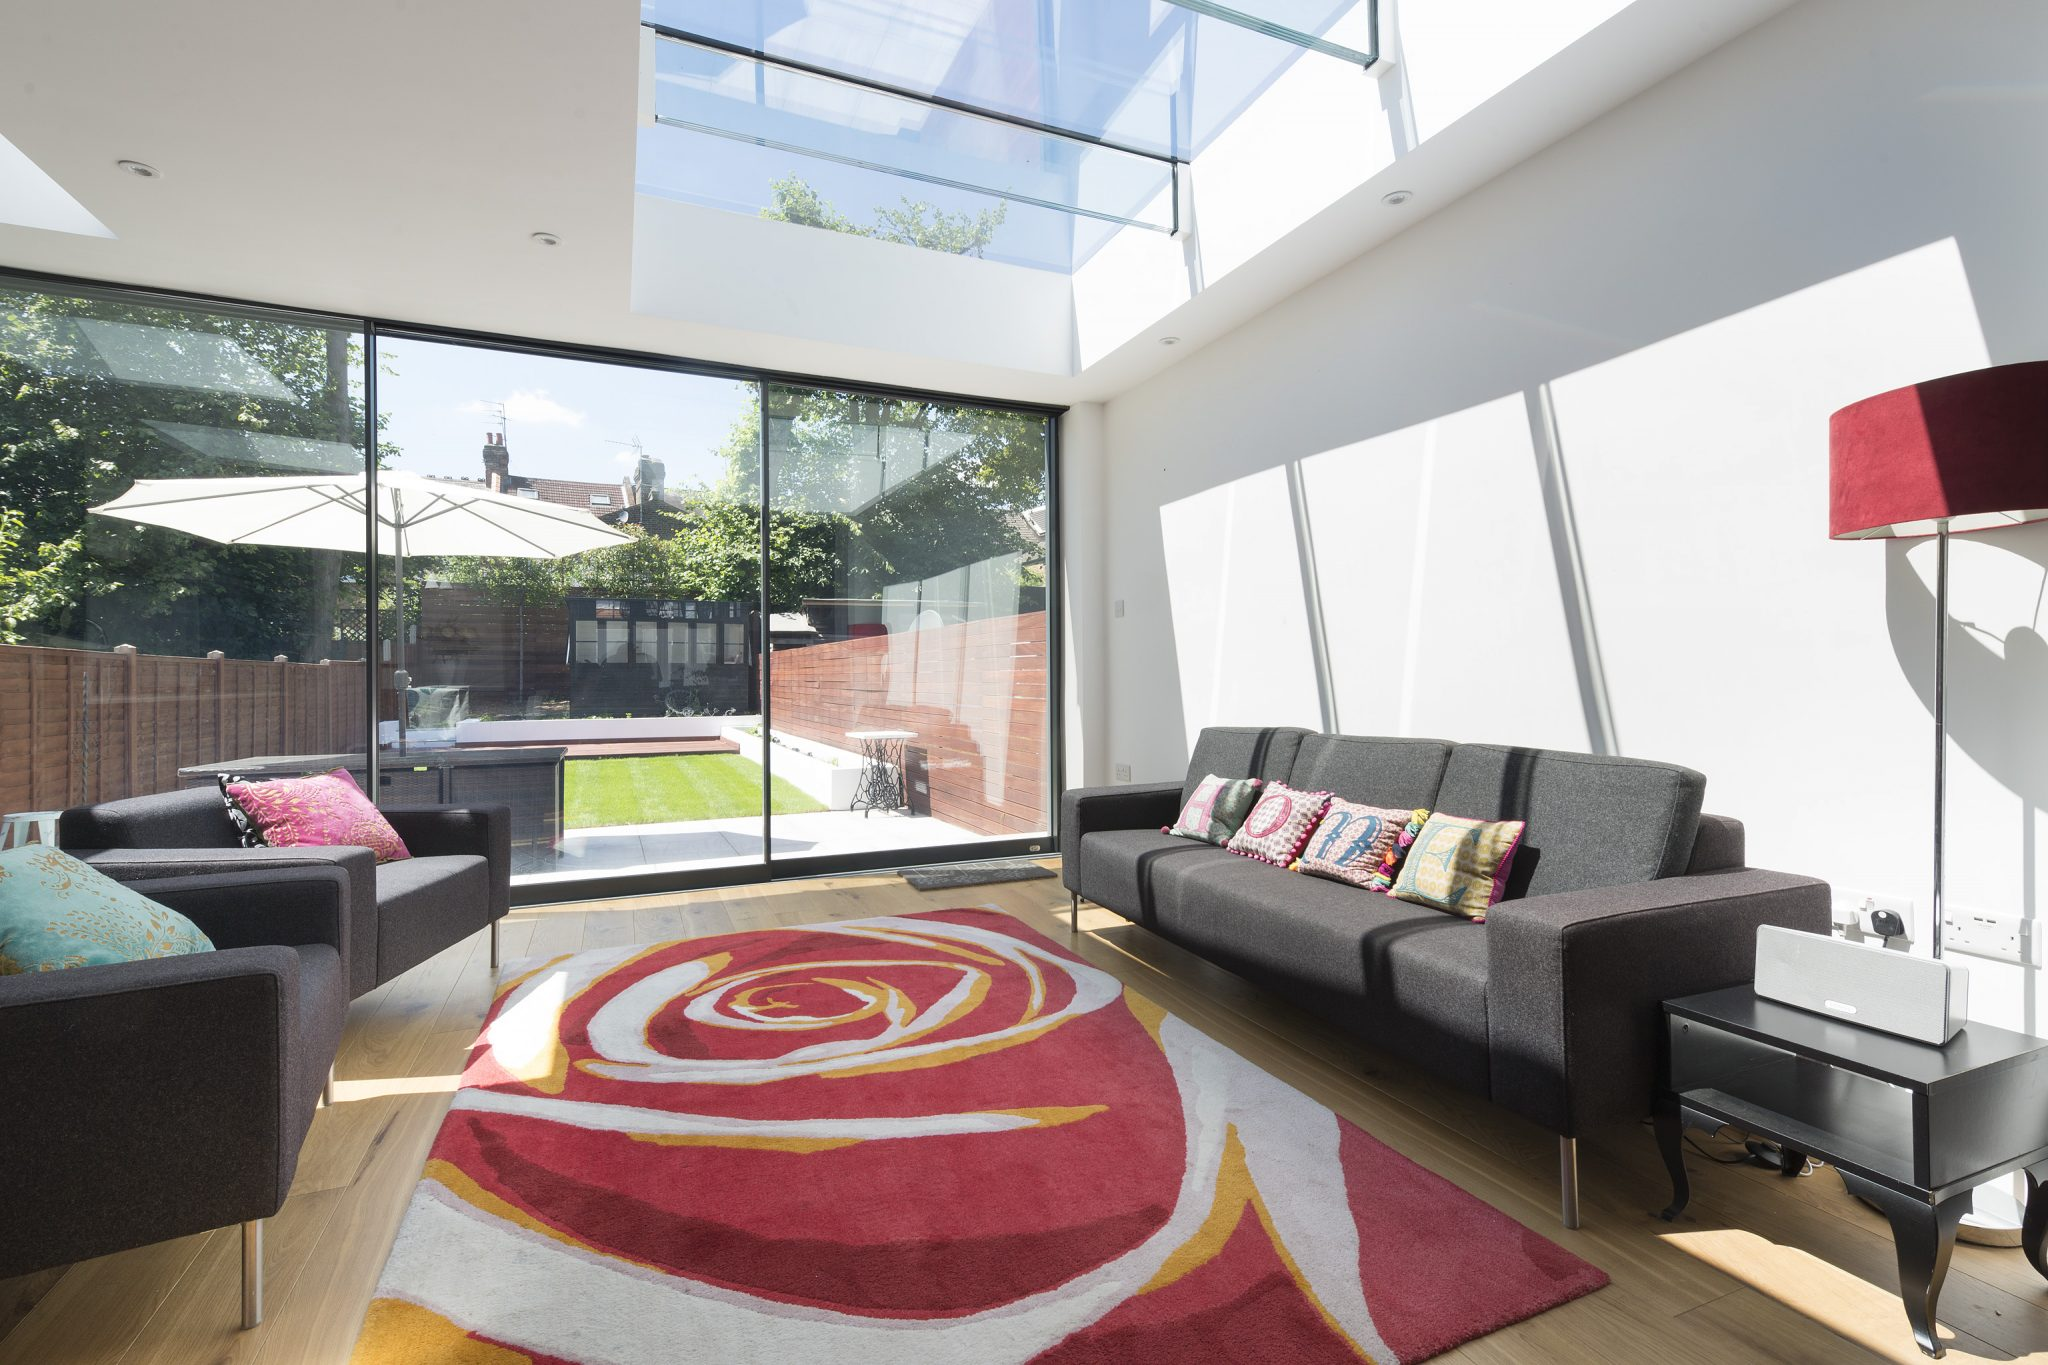 Fixed Multi-Panel Skylight with Glass Beams